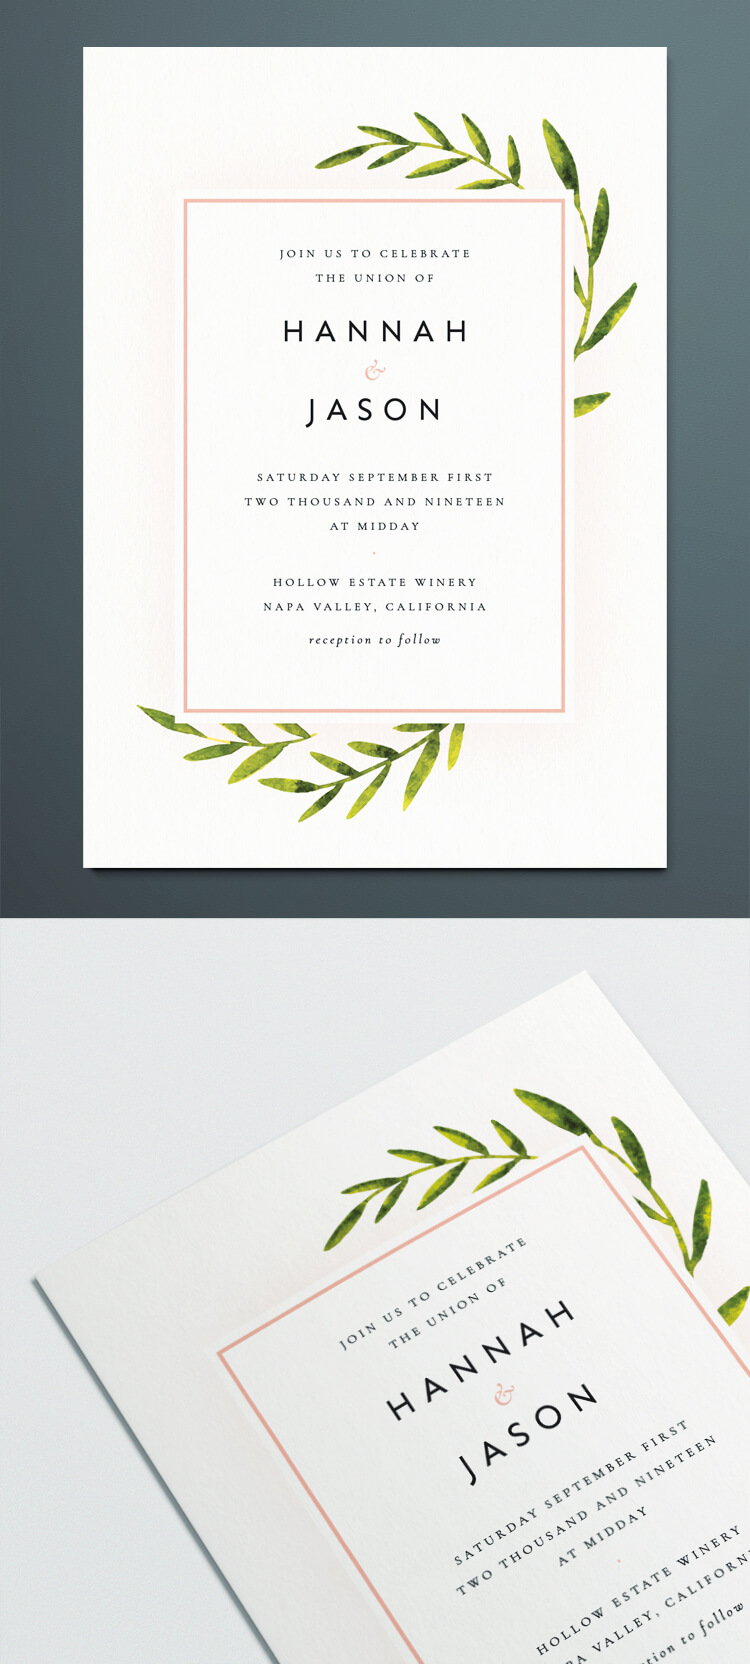 InDesign Wedding Invitation Template with Botanical vintage illustration. Free downloadable design for DIY wedding invite.